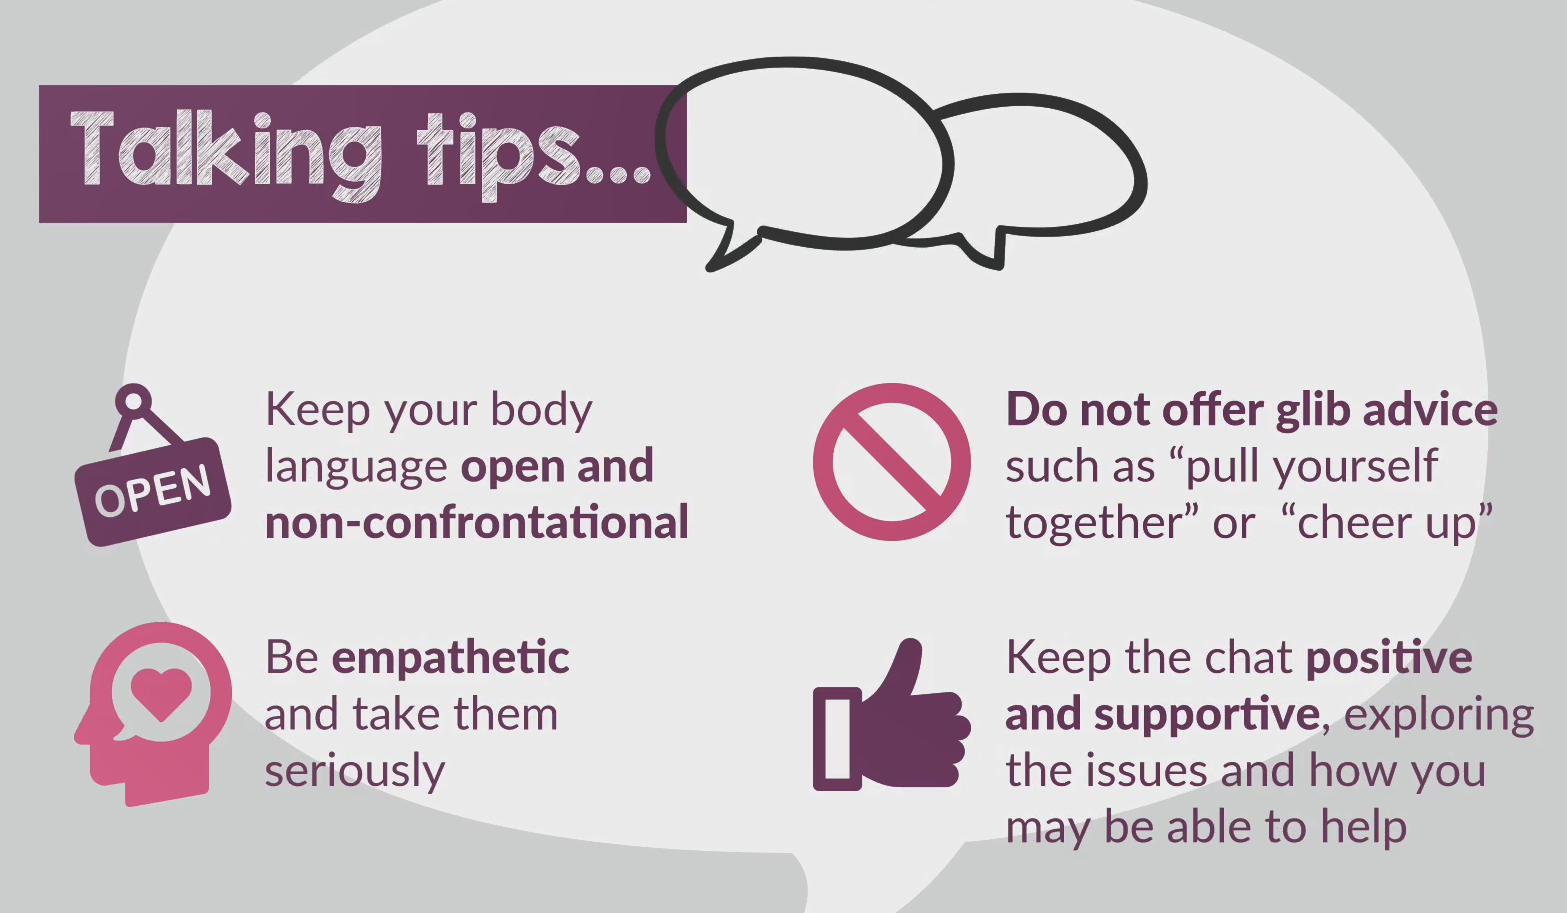 #HU4HM - Tips for talking with young people